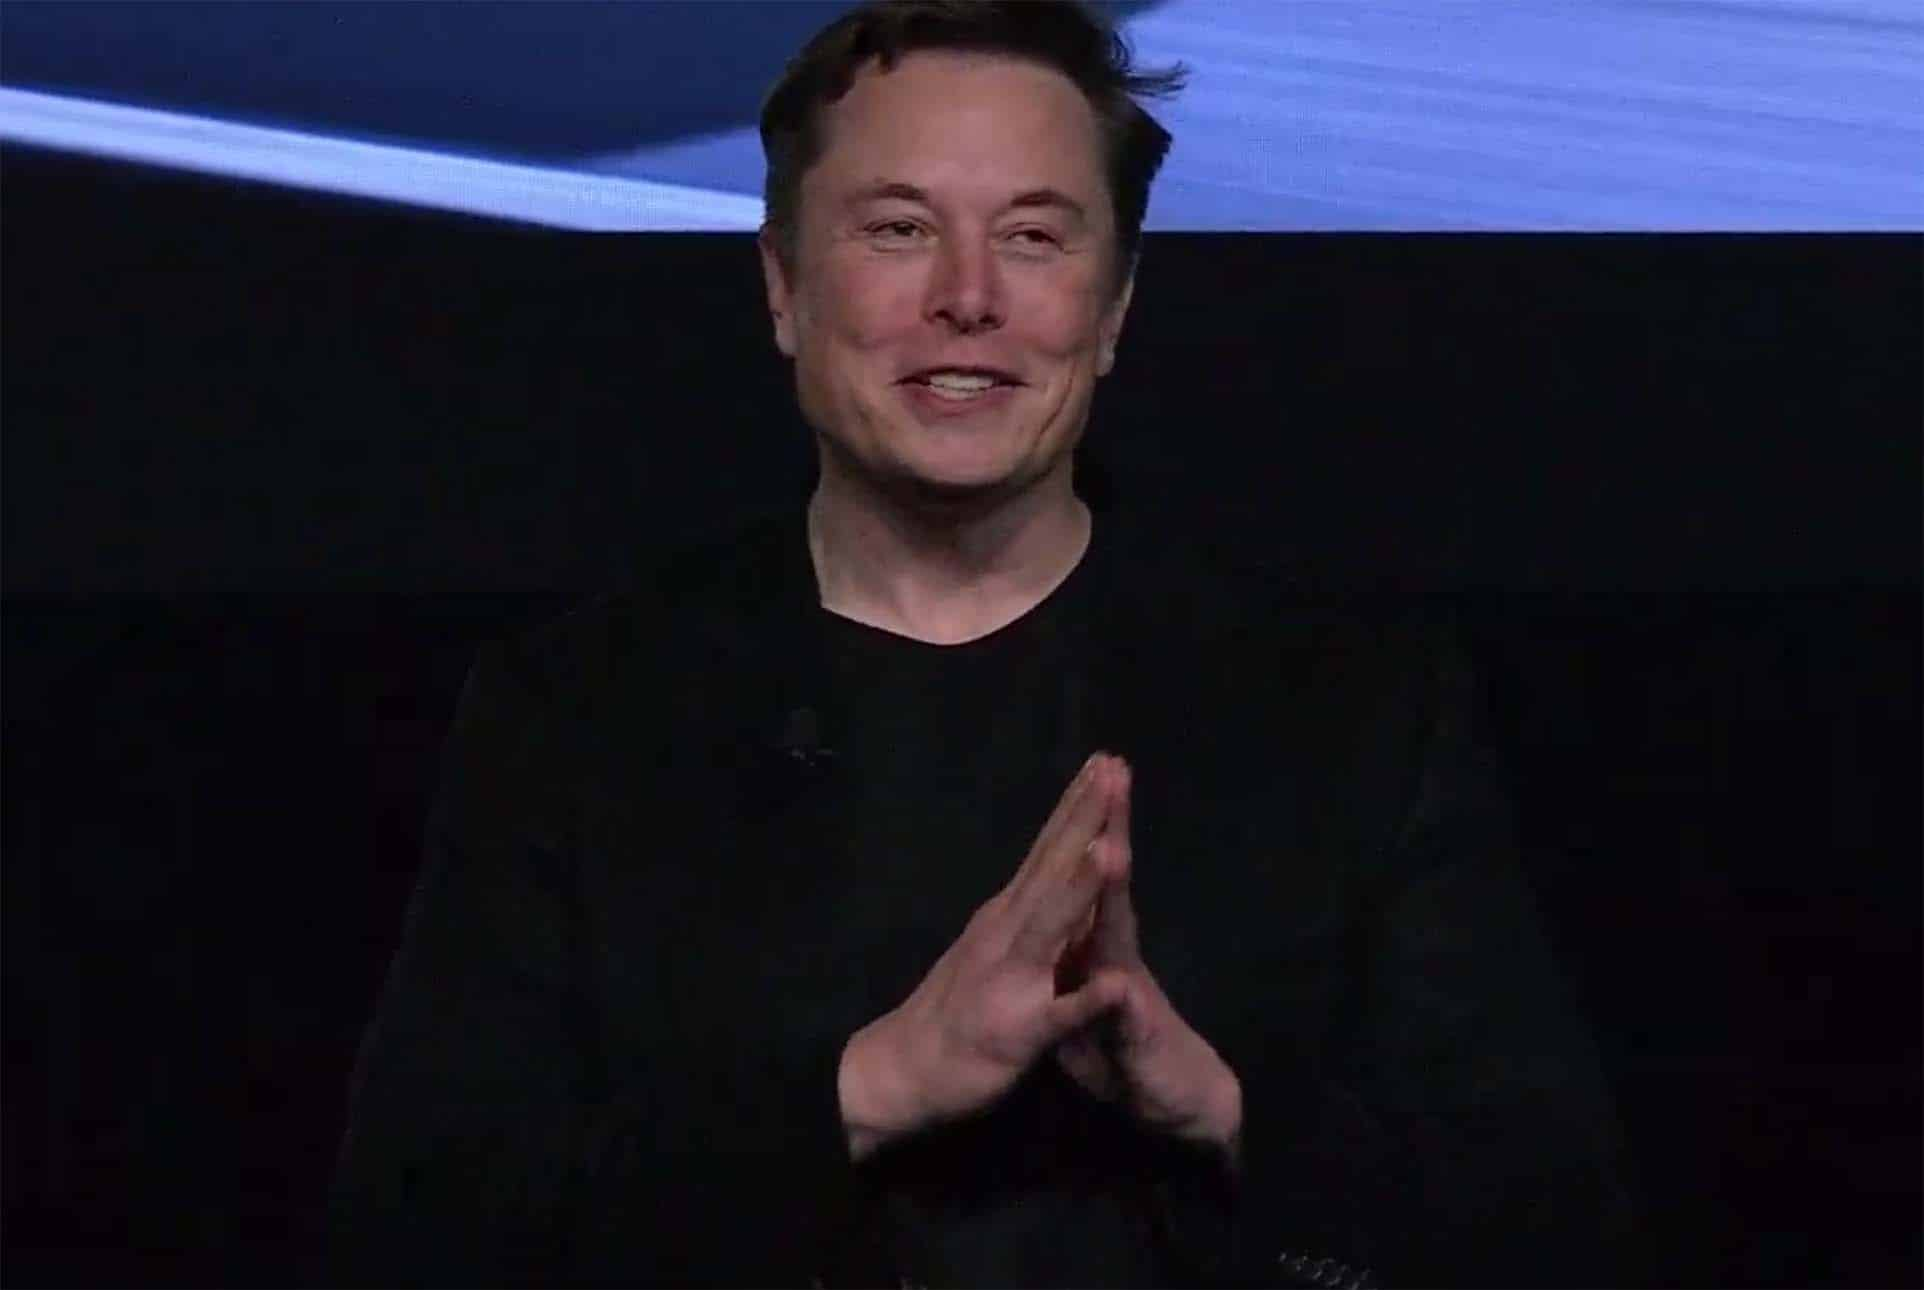 """Tesla CEO Musk Set to Announce """"Full Self-Driving"""" Vehicle Today"""